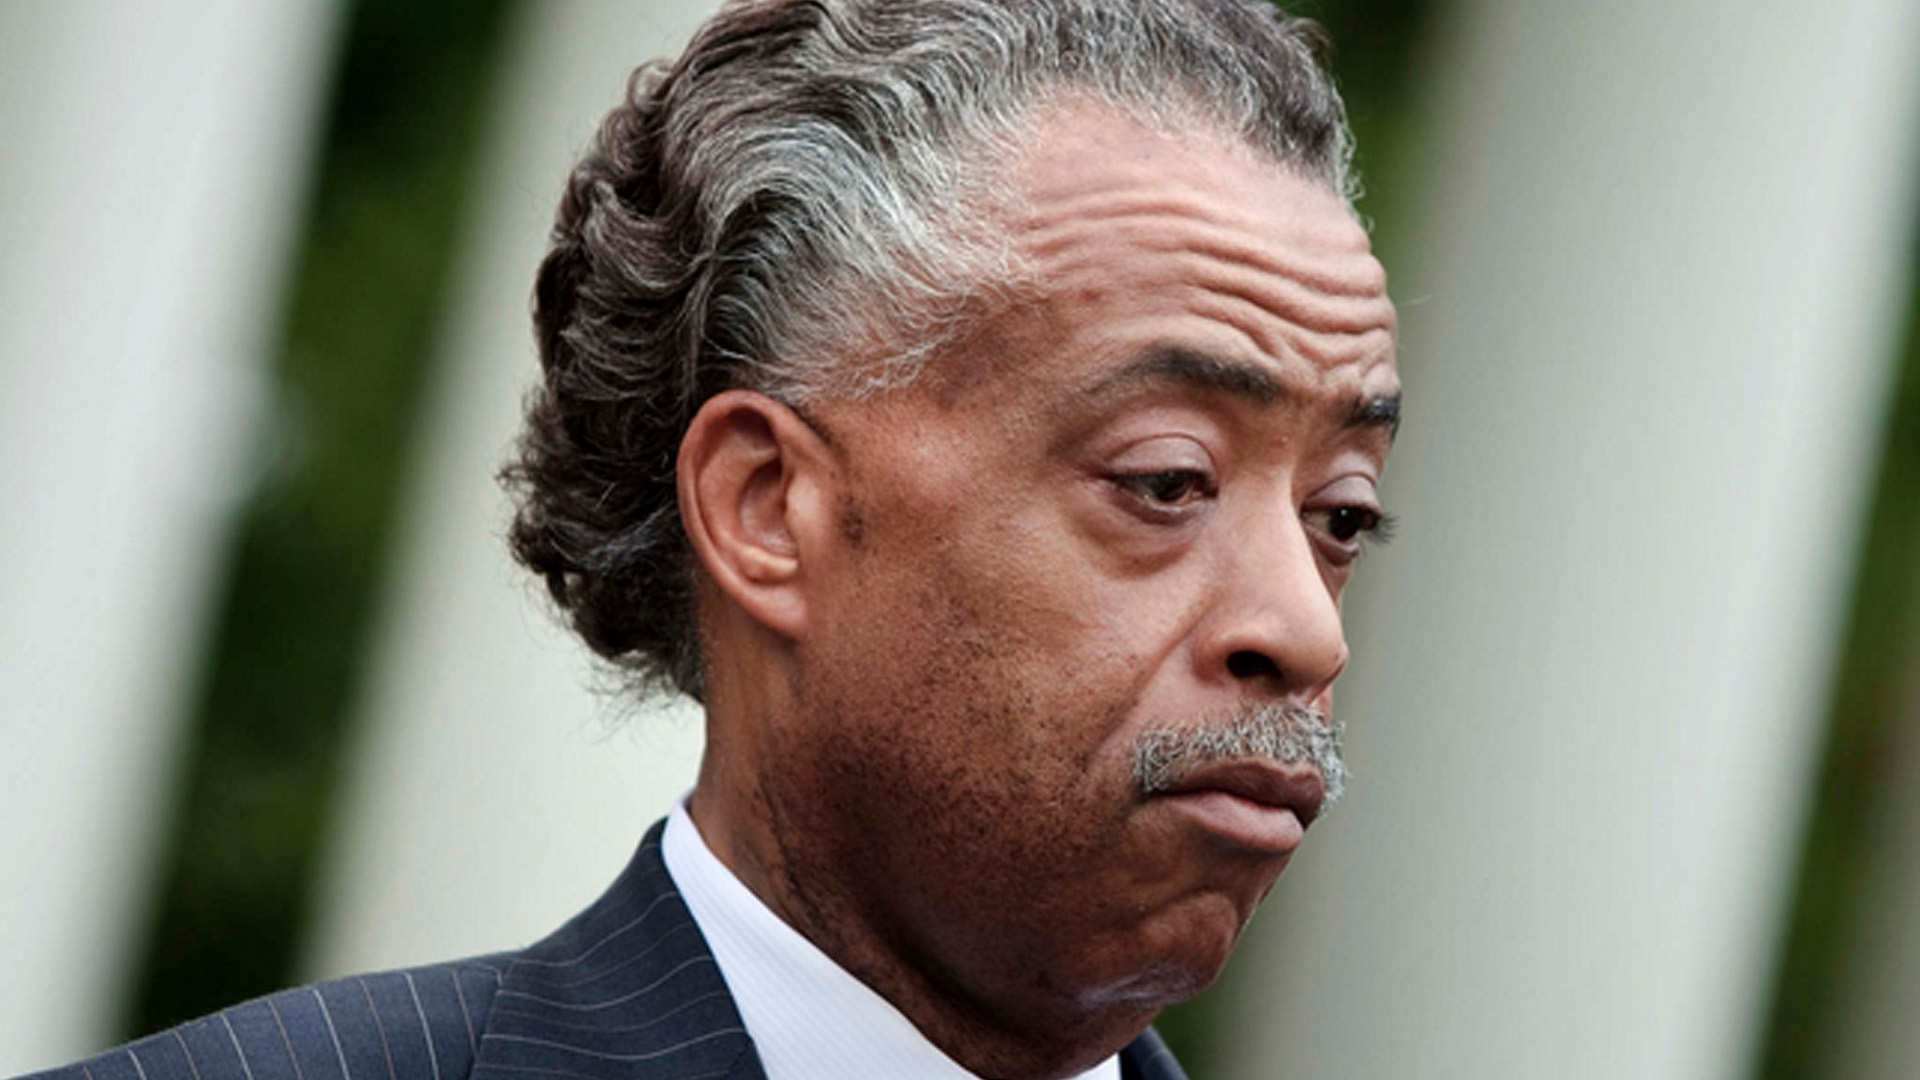 Al Sharpton Hd Wallpaper